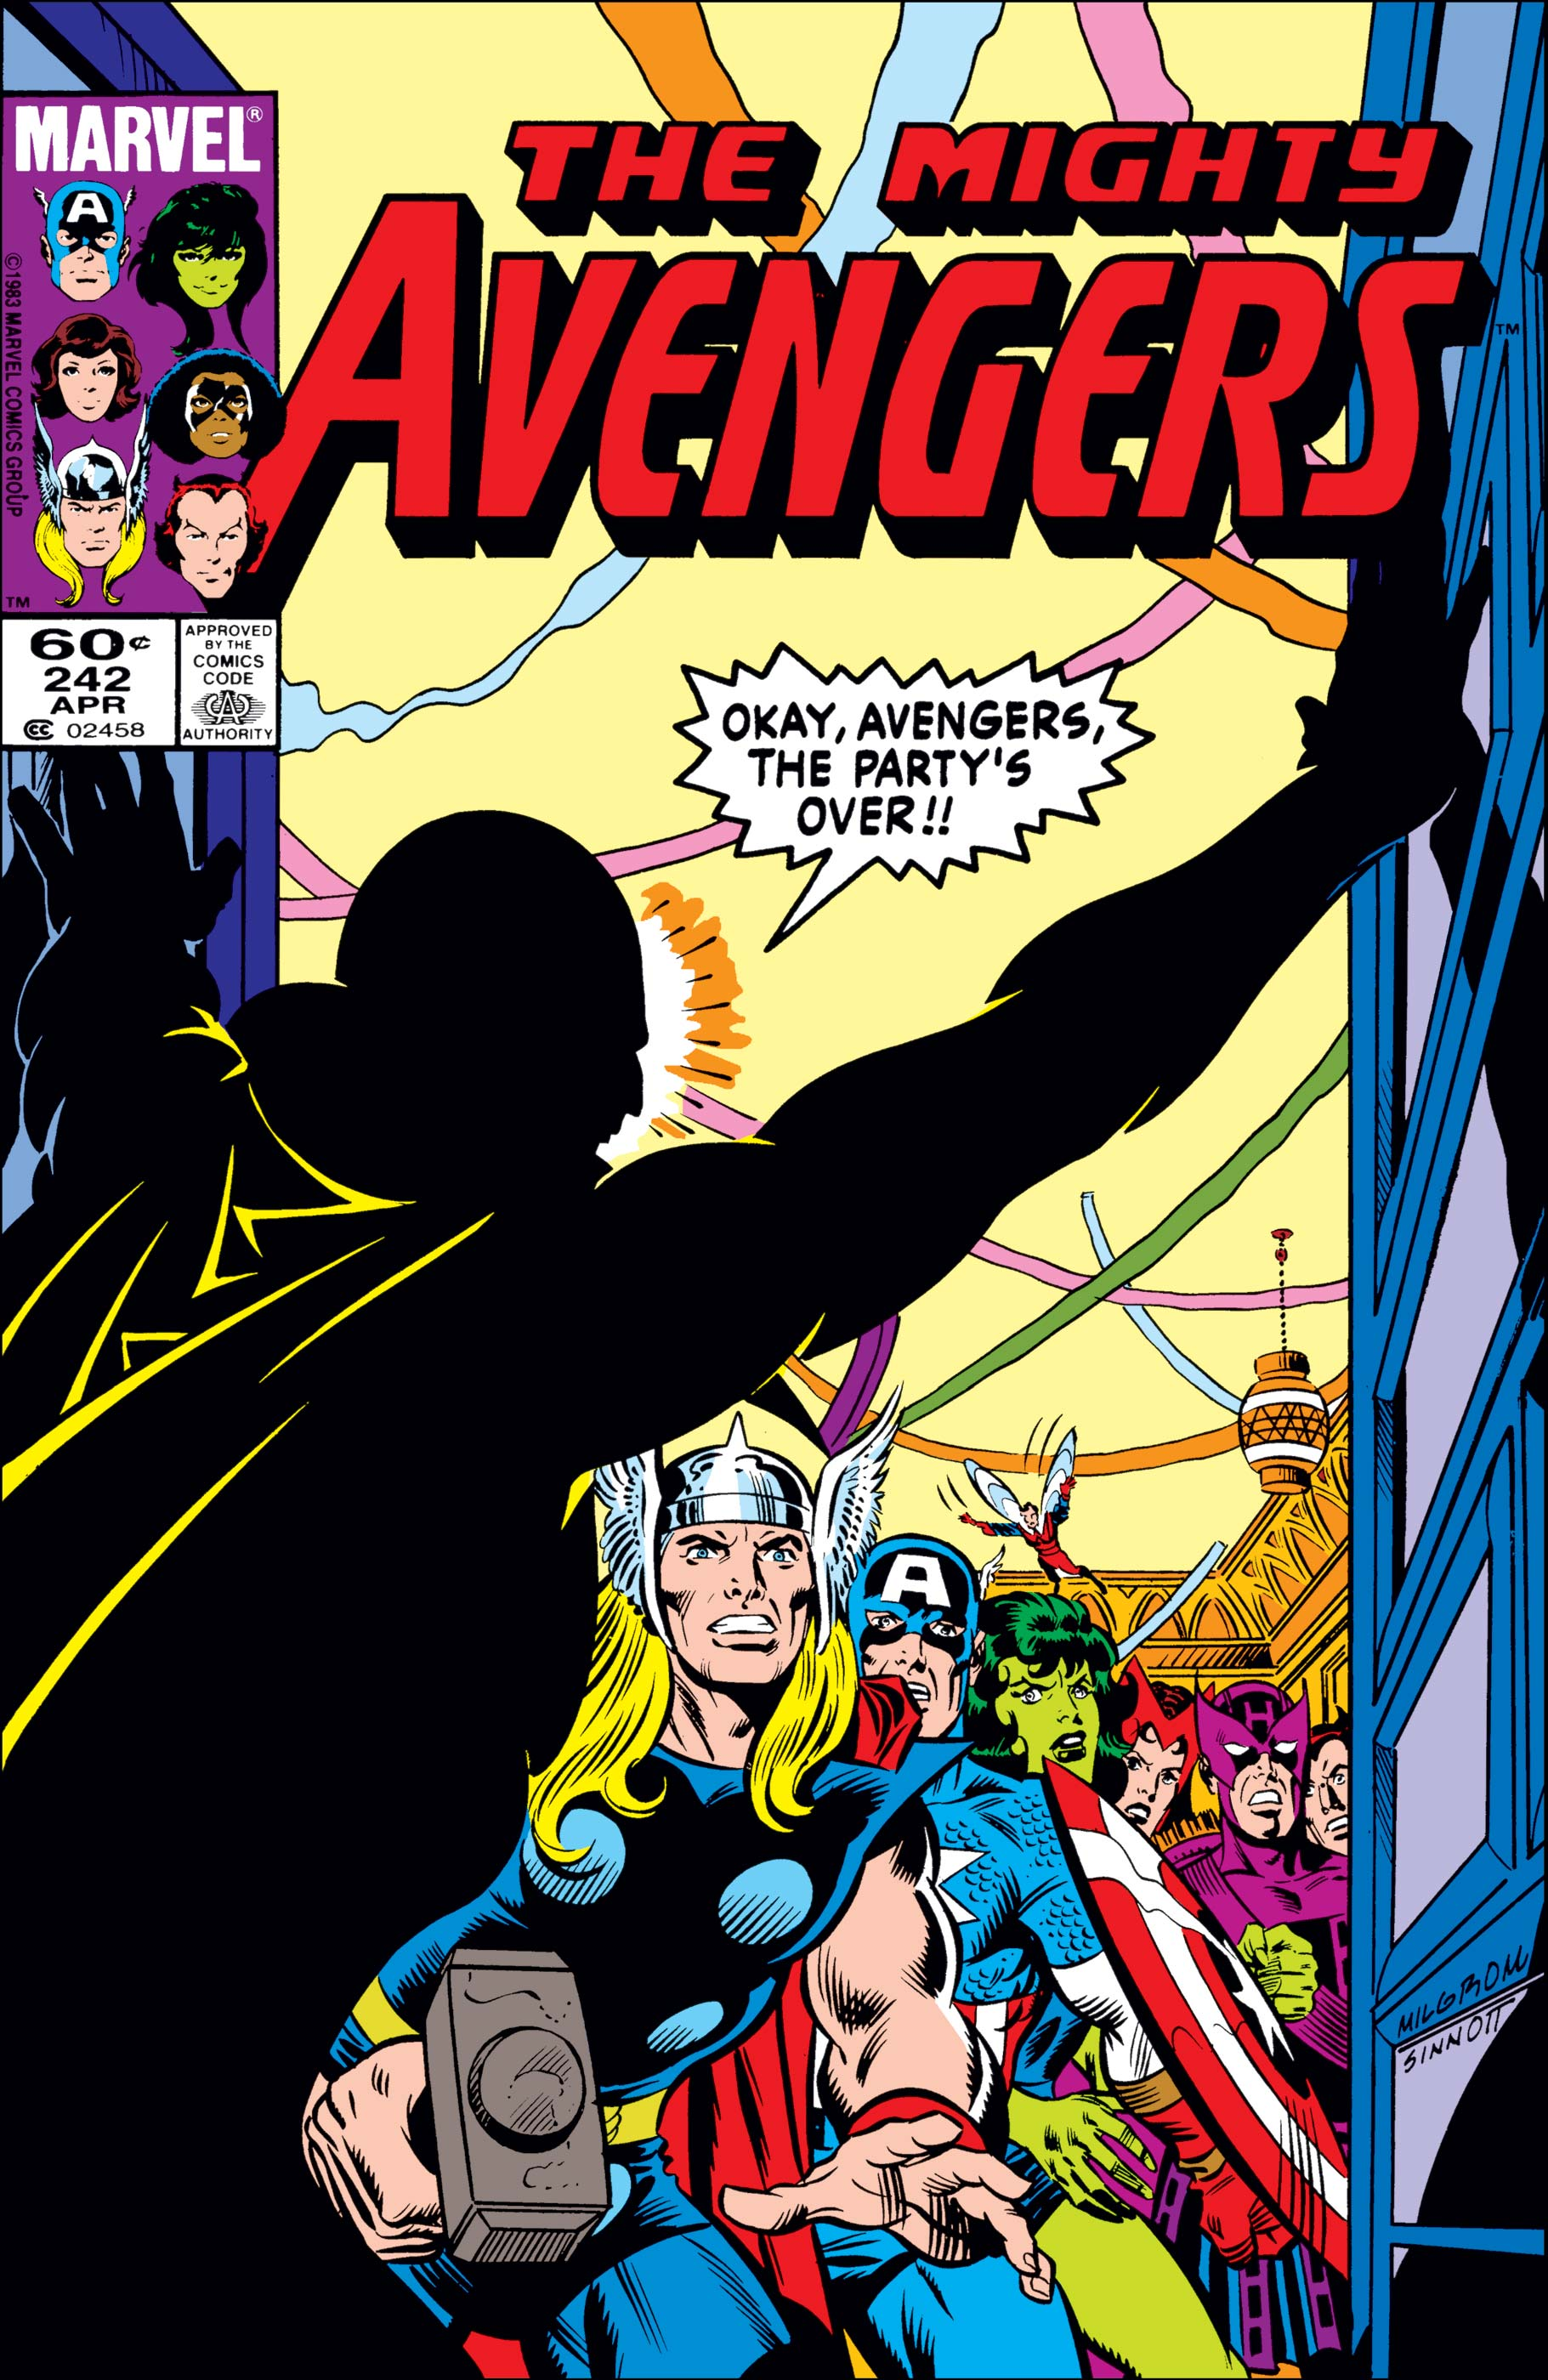 Avengers (1963) #242 | Comic Issues | Marvel